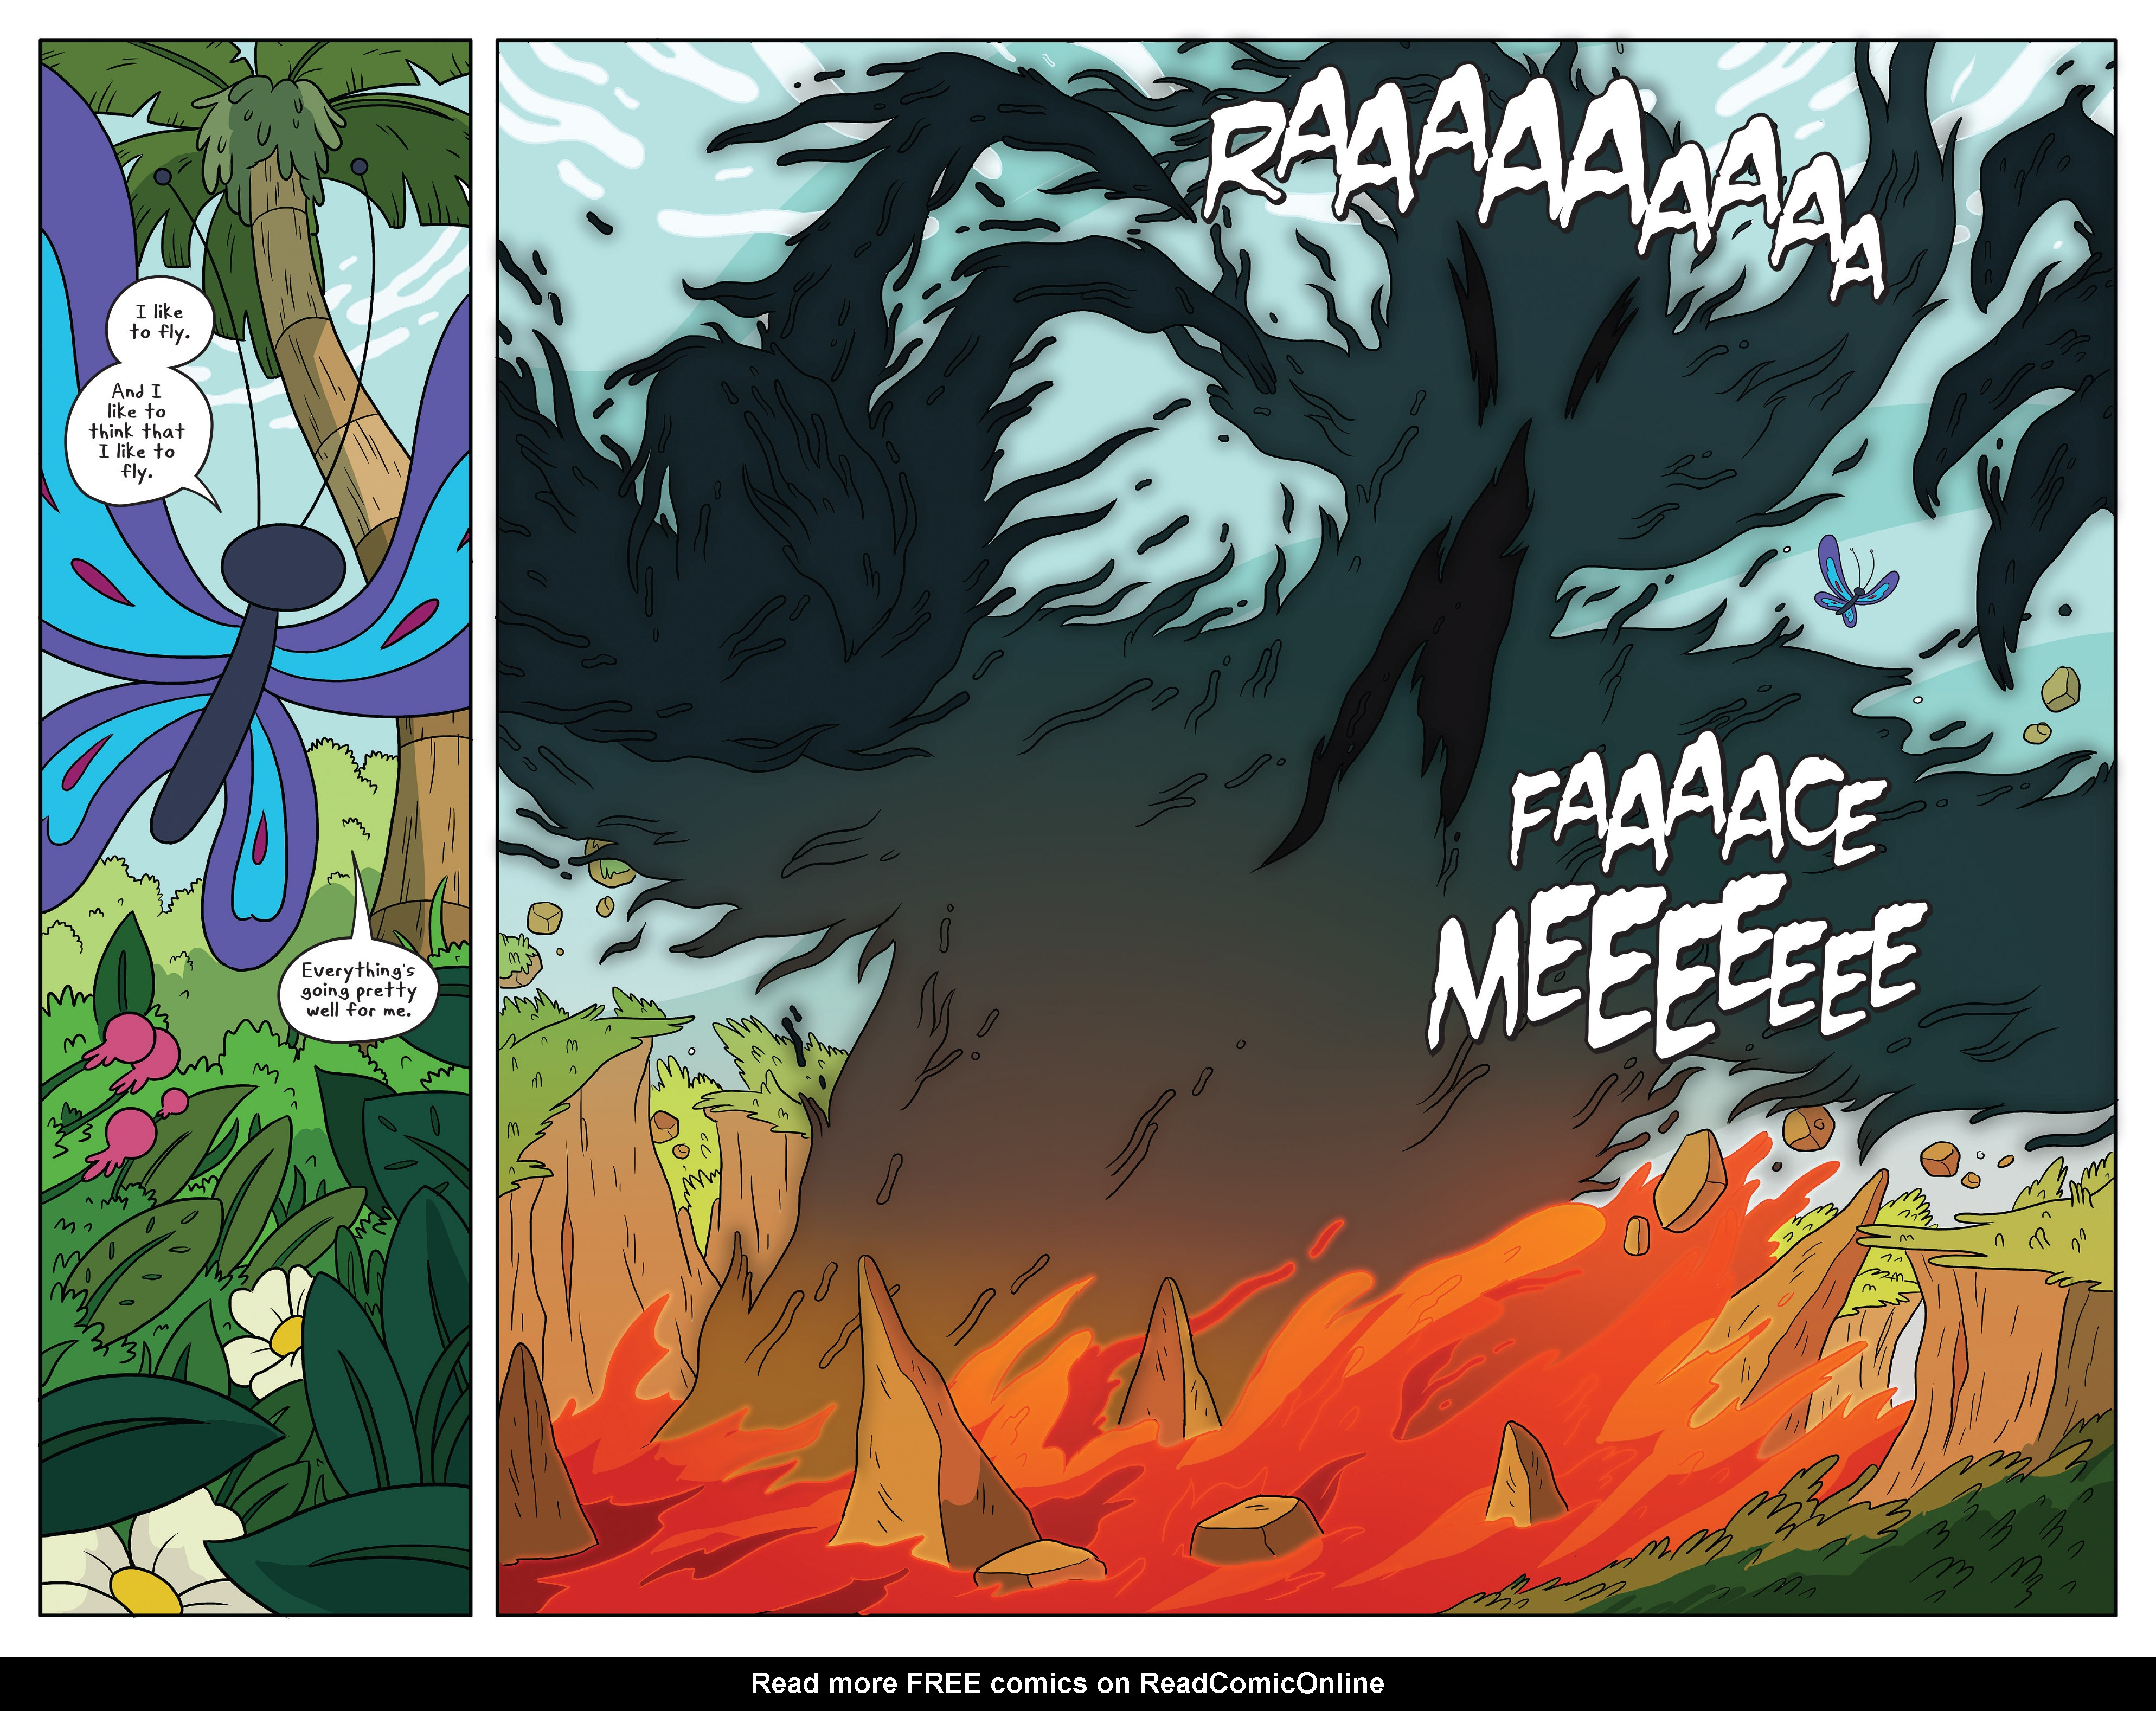 Read online Adventure Time comic -  Issue #50 - 24